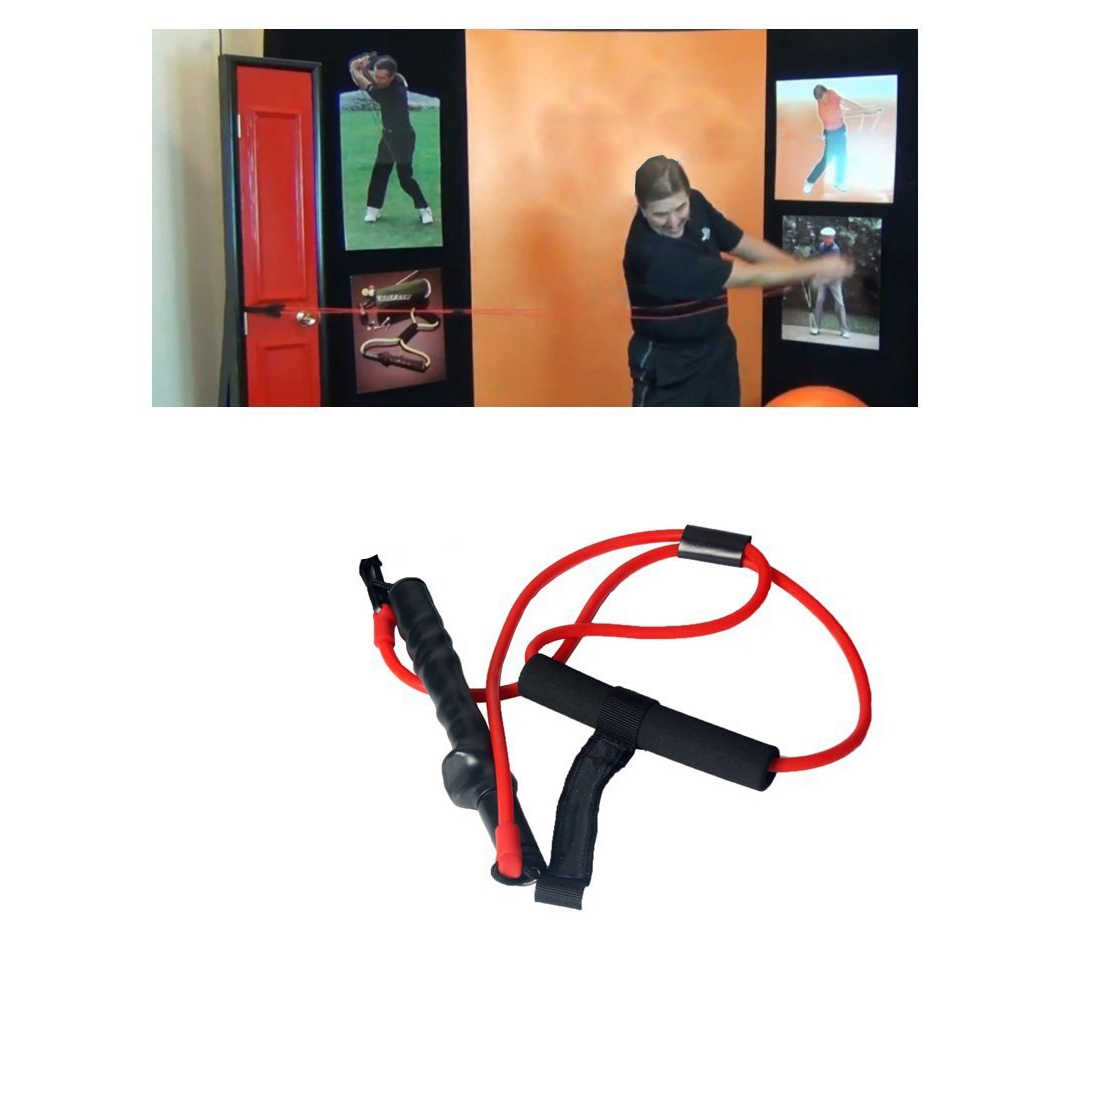 Golf Swing Trainer Strength Trainer Strong Action Correction Device Golf Club Golf Swing Golf Training Supplies